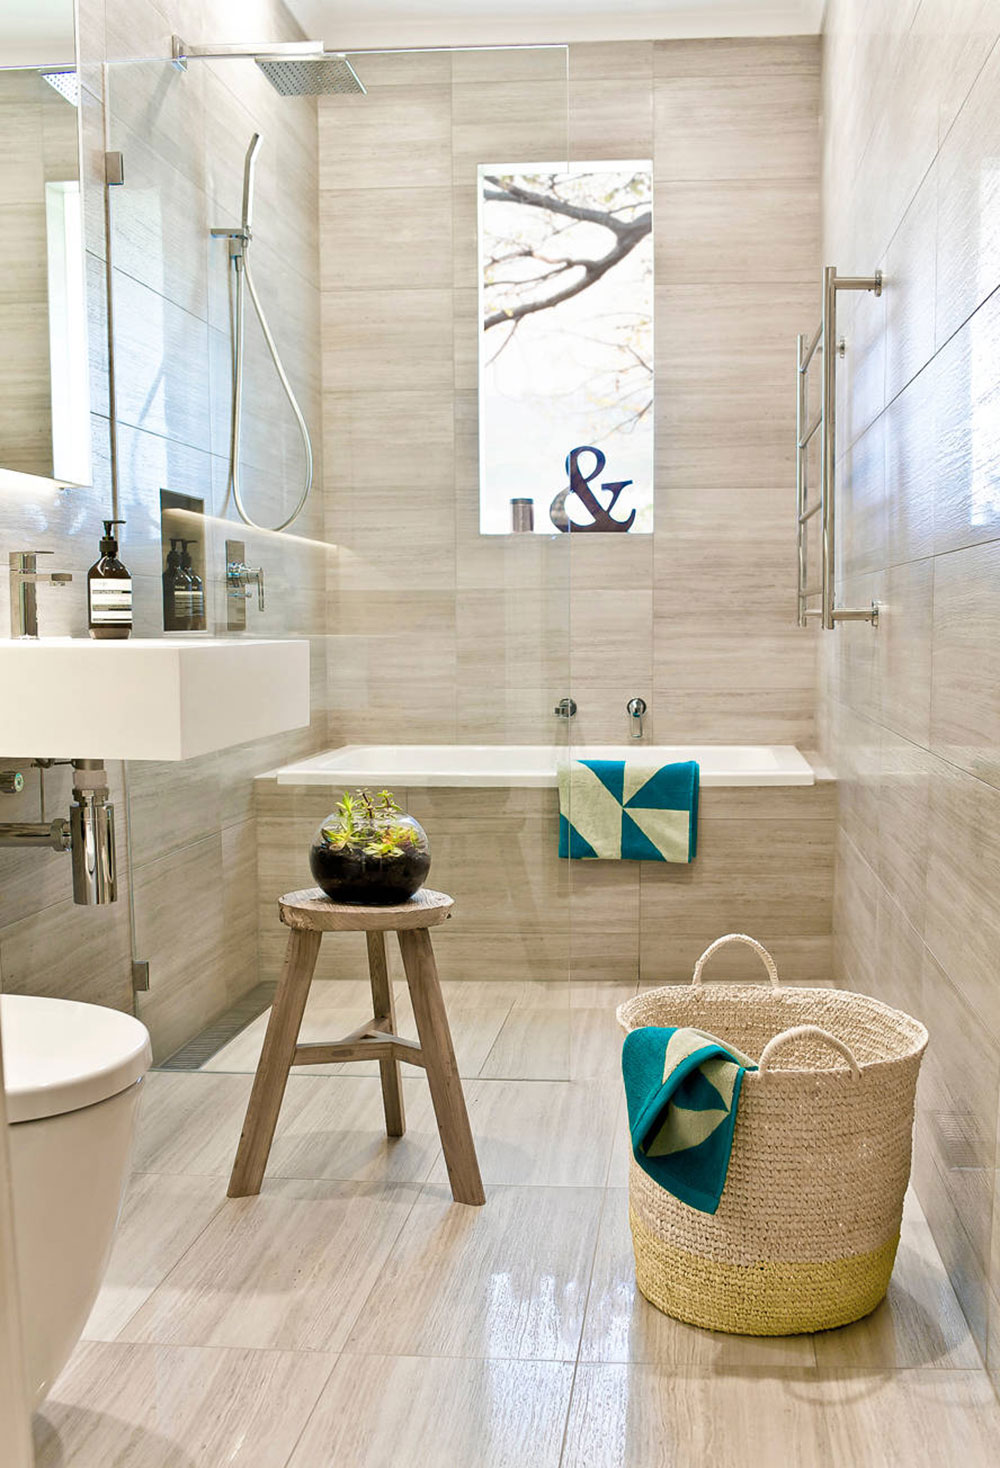 Tim-Ditchfield-Architects-from-GIA-Bathroom-Kitchens Where to hang wet towels in a small bathroom